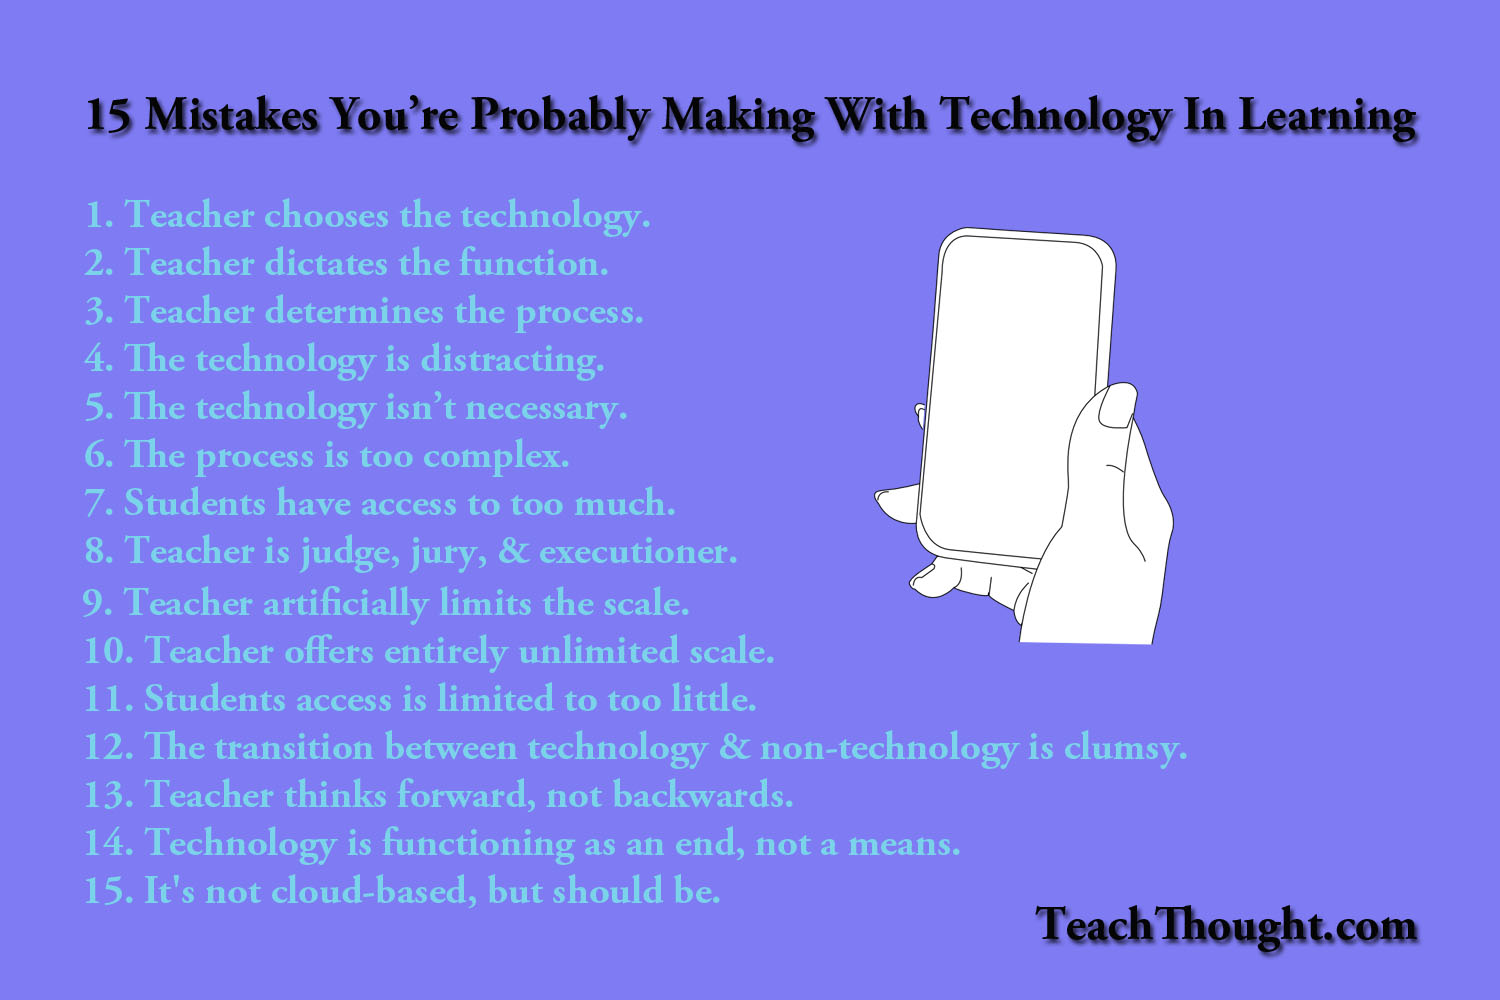 15-mistakes-you're-making-with-technology-in-learning